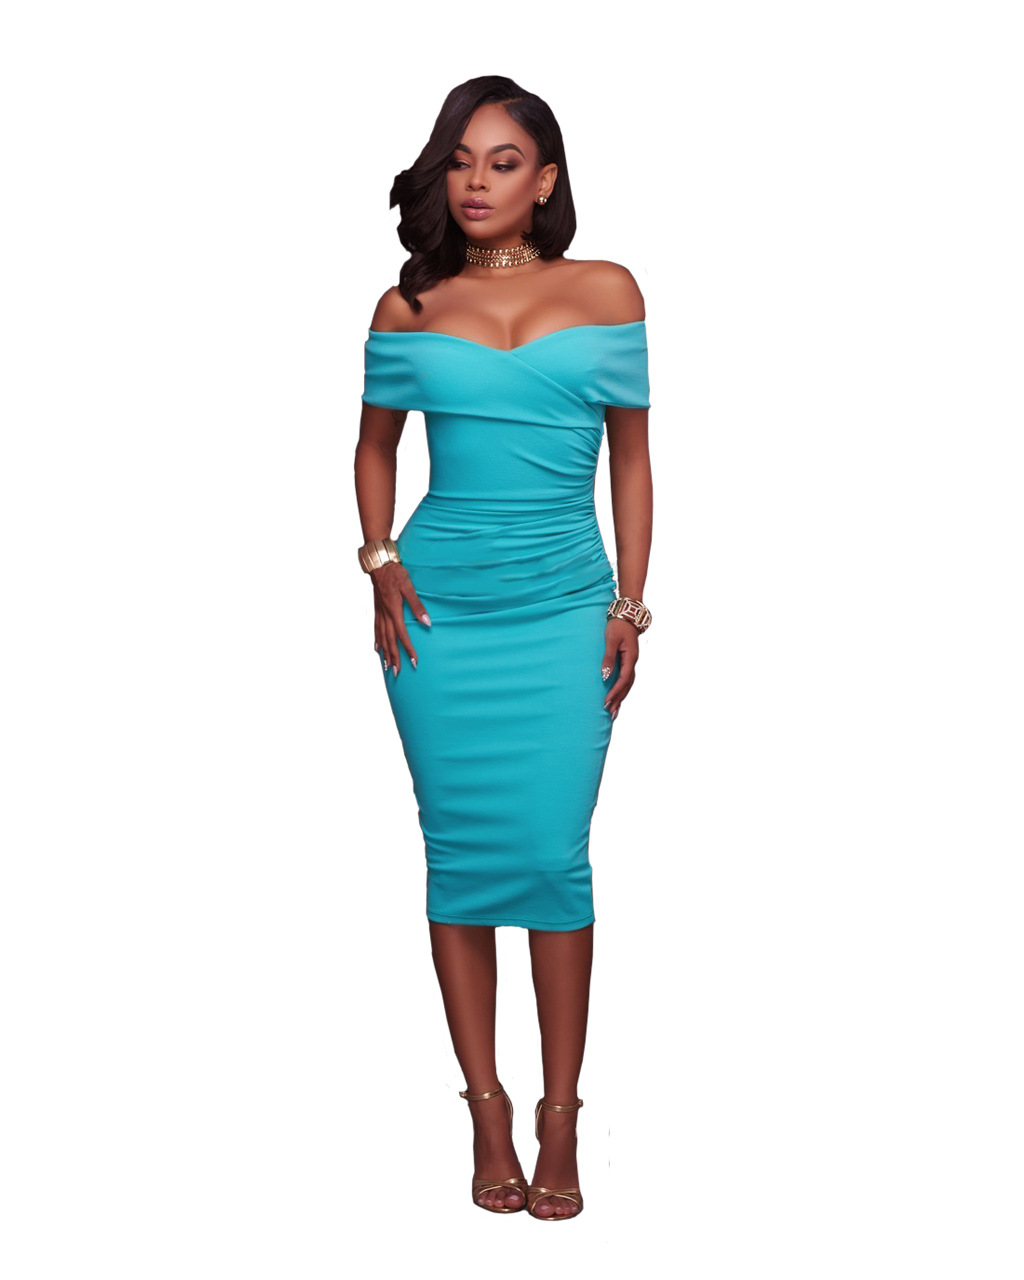 Women Midi Bodycon Dress Ruched Elegant Sexy Off the Shoulder Party Clubwear Pencil Dress light blue